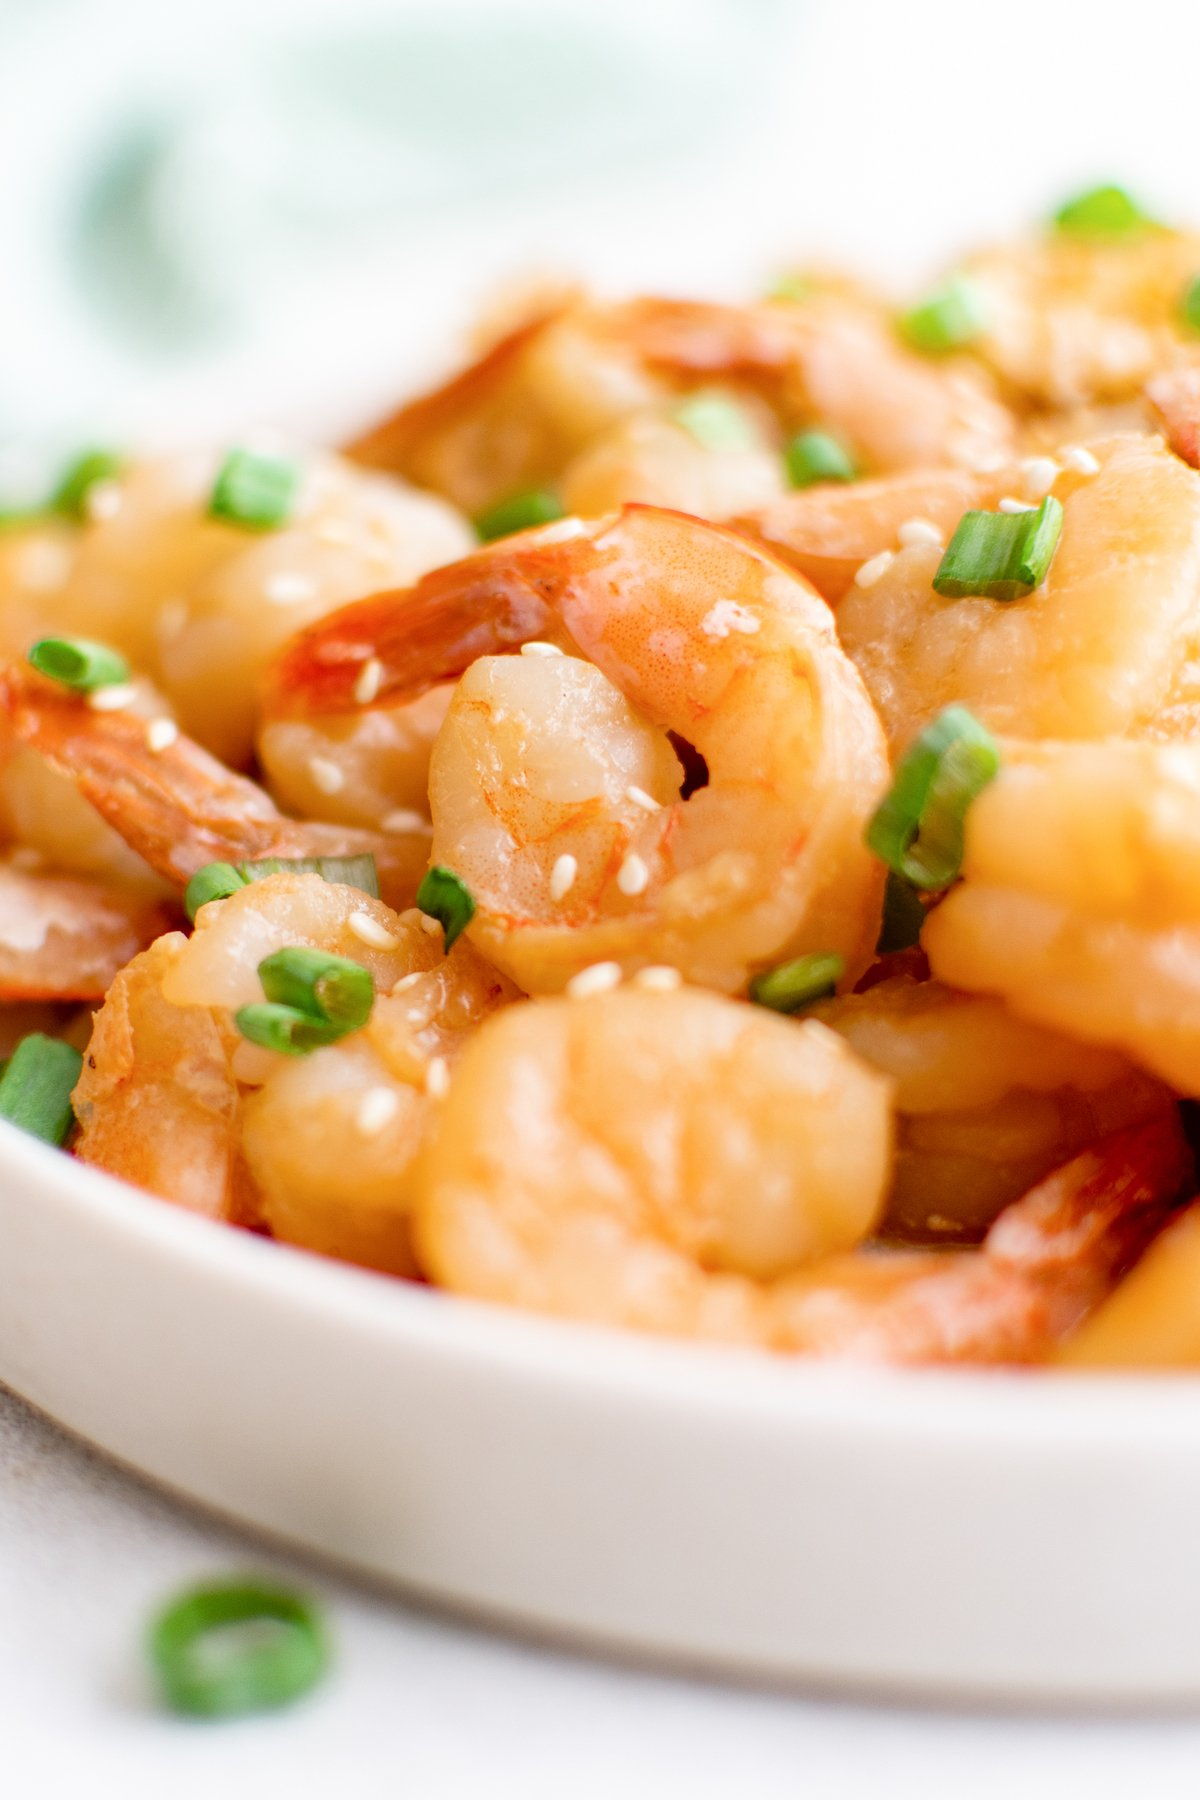 A white plate filled with cooked hibachi shrimp that's covered in sesame seeds and sliced green onions.